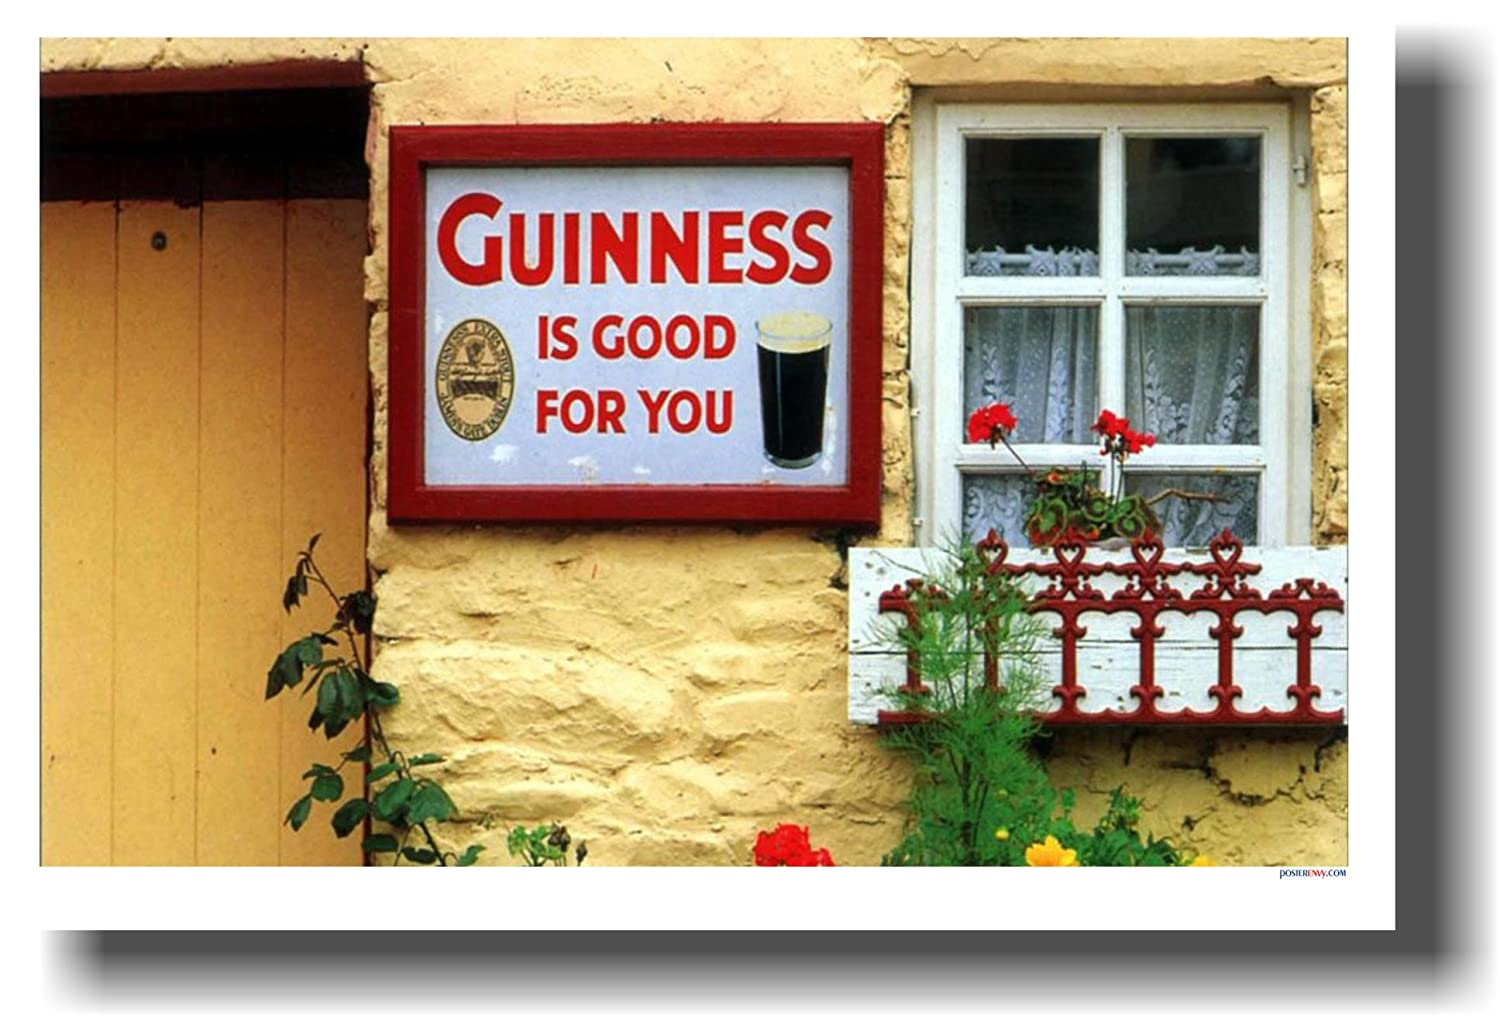 Amazon.com: Guinness Is Good For You - Funny Humor Joke Poster ...